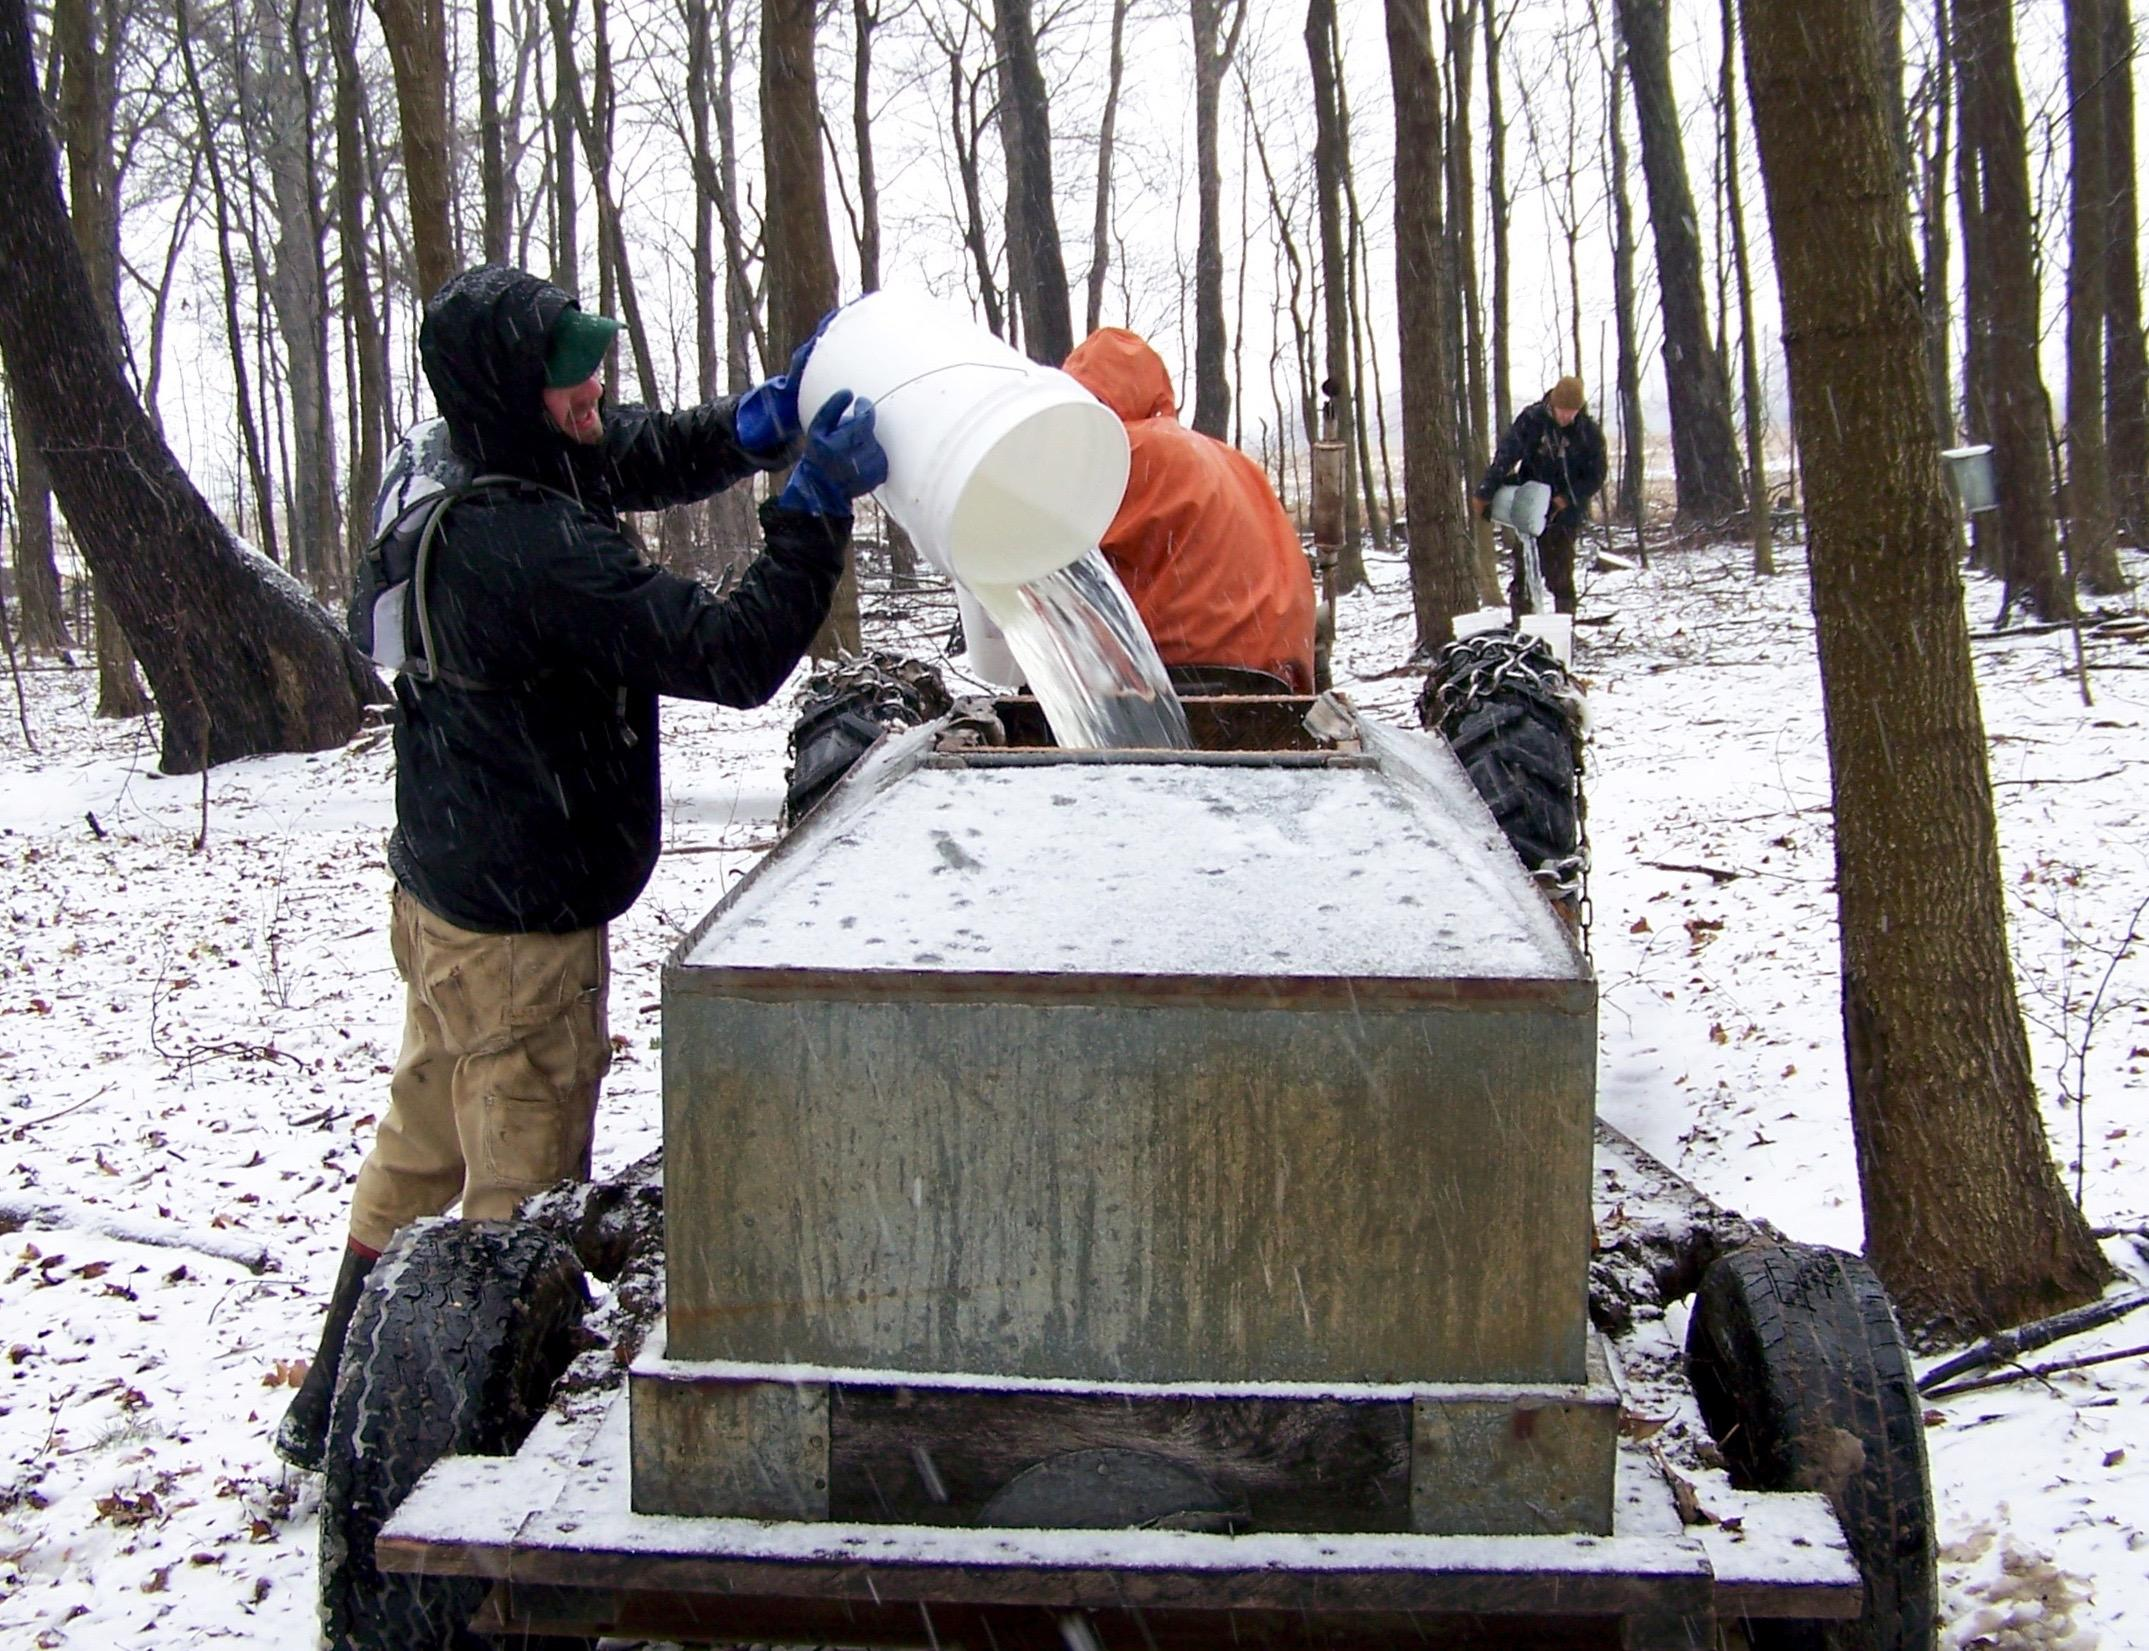 8fa20727c15 Jonathan Funk pouring sap into a gathering tank at Funks Grove. Maple syrup  producers collect sap daily. (Debby Funk)